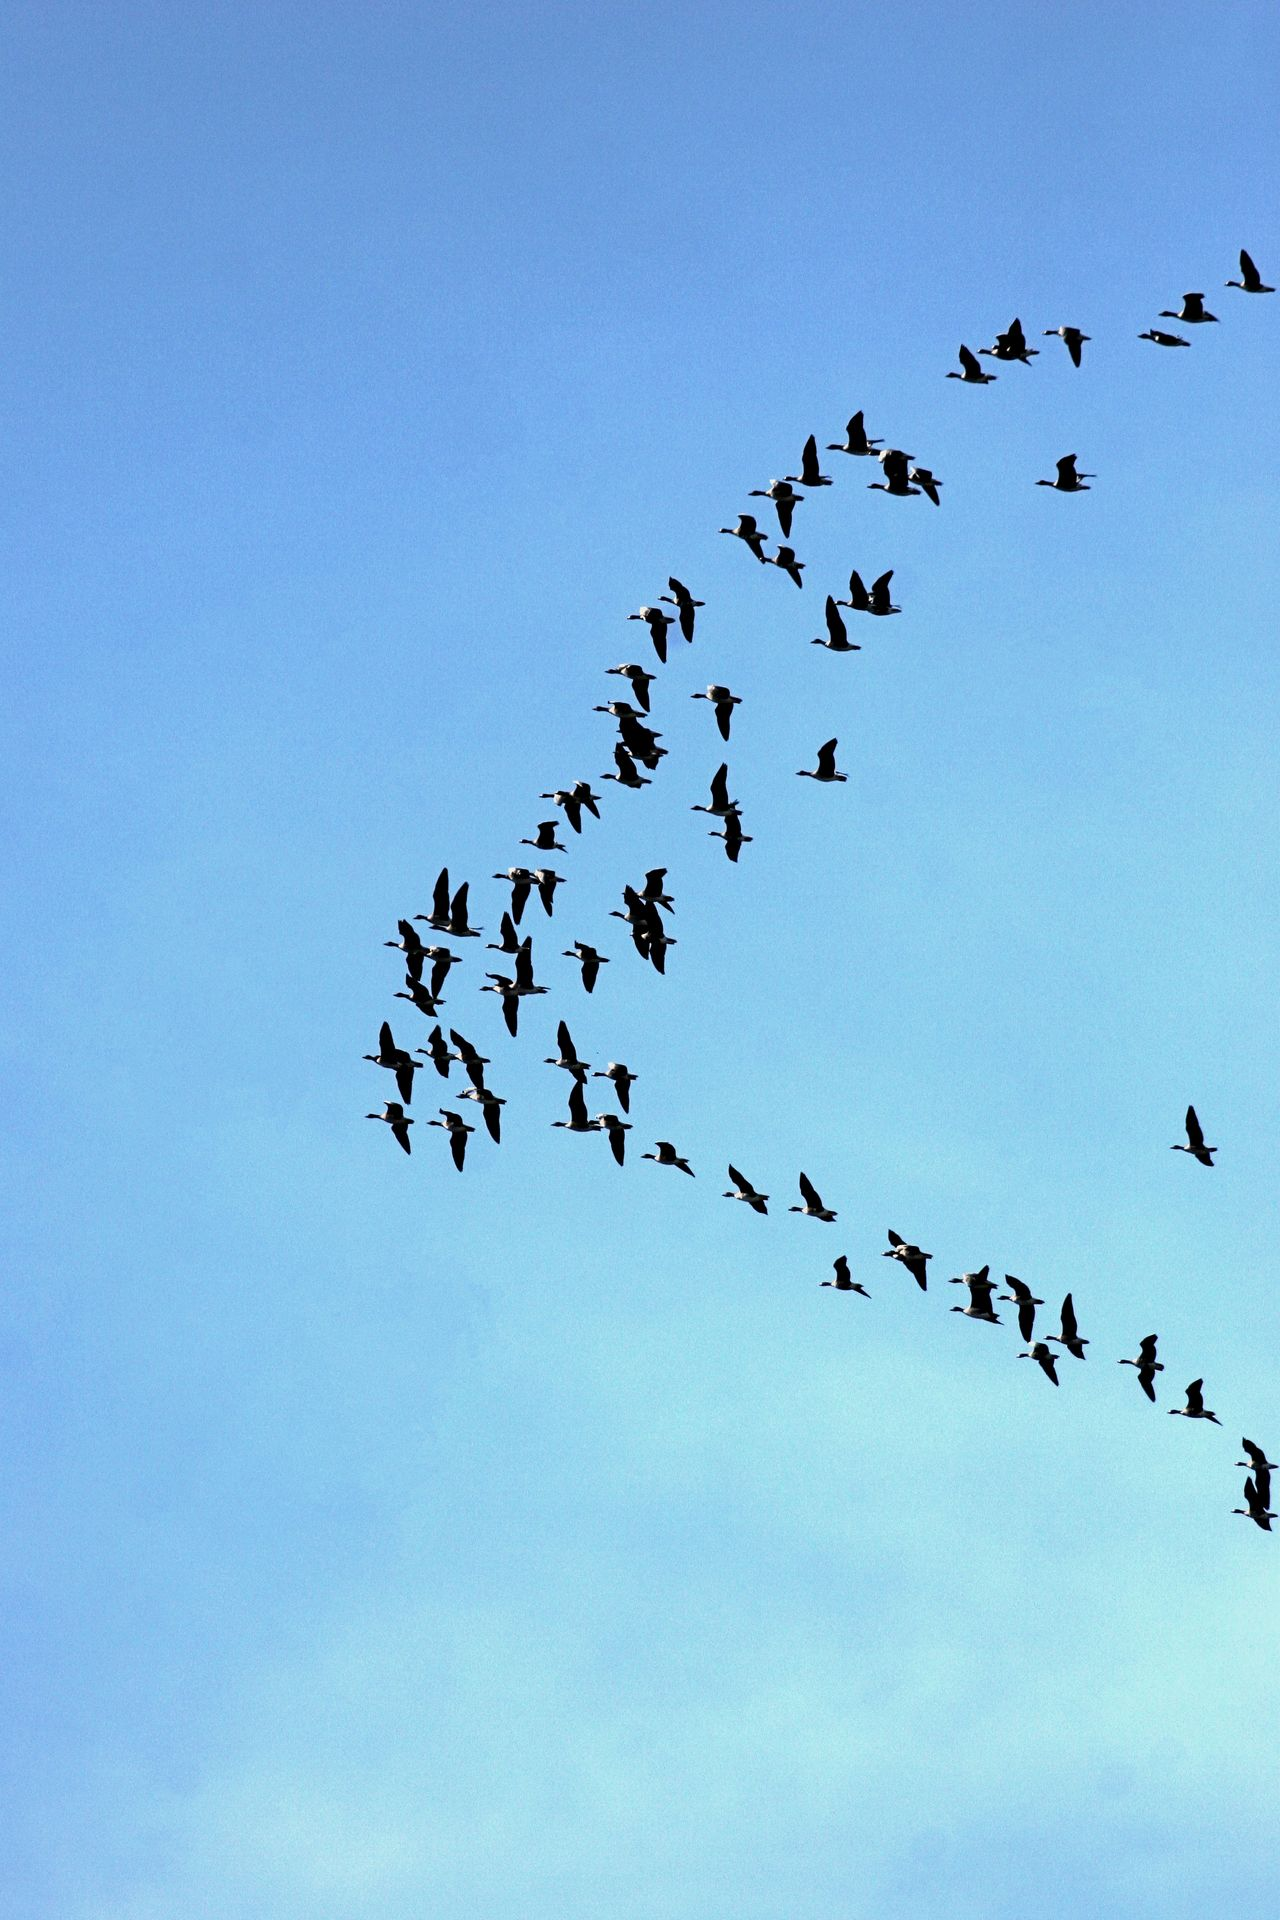 Animal Themes Animal Wildlife Animals In The Wild Beauty In Nature Bird Day Flock Of Birds Flying Going South Large Group Of Animals Low Angle View Mid-air Migrating Nature No People Outdoors Sky Togetherness Wild Geese Wildlife